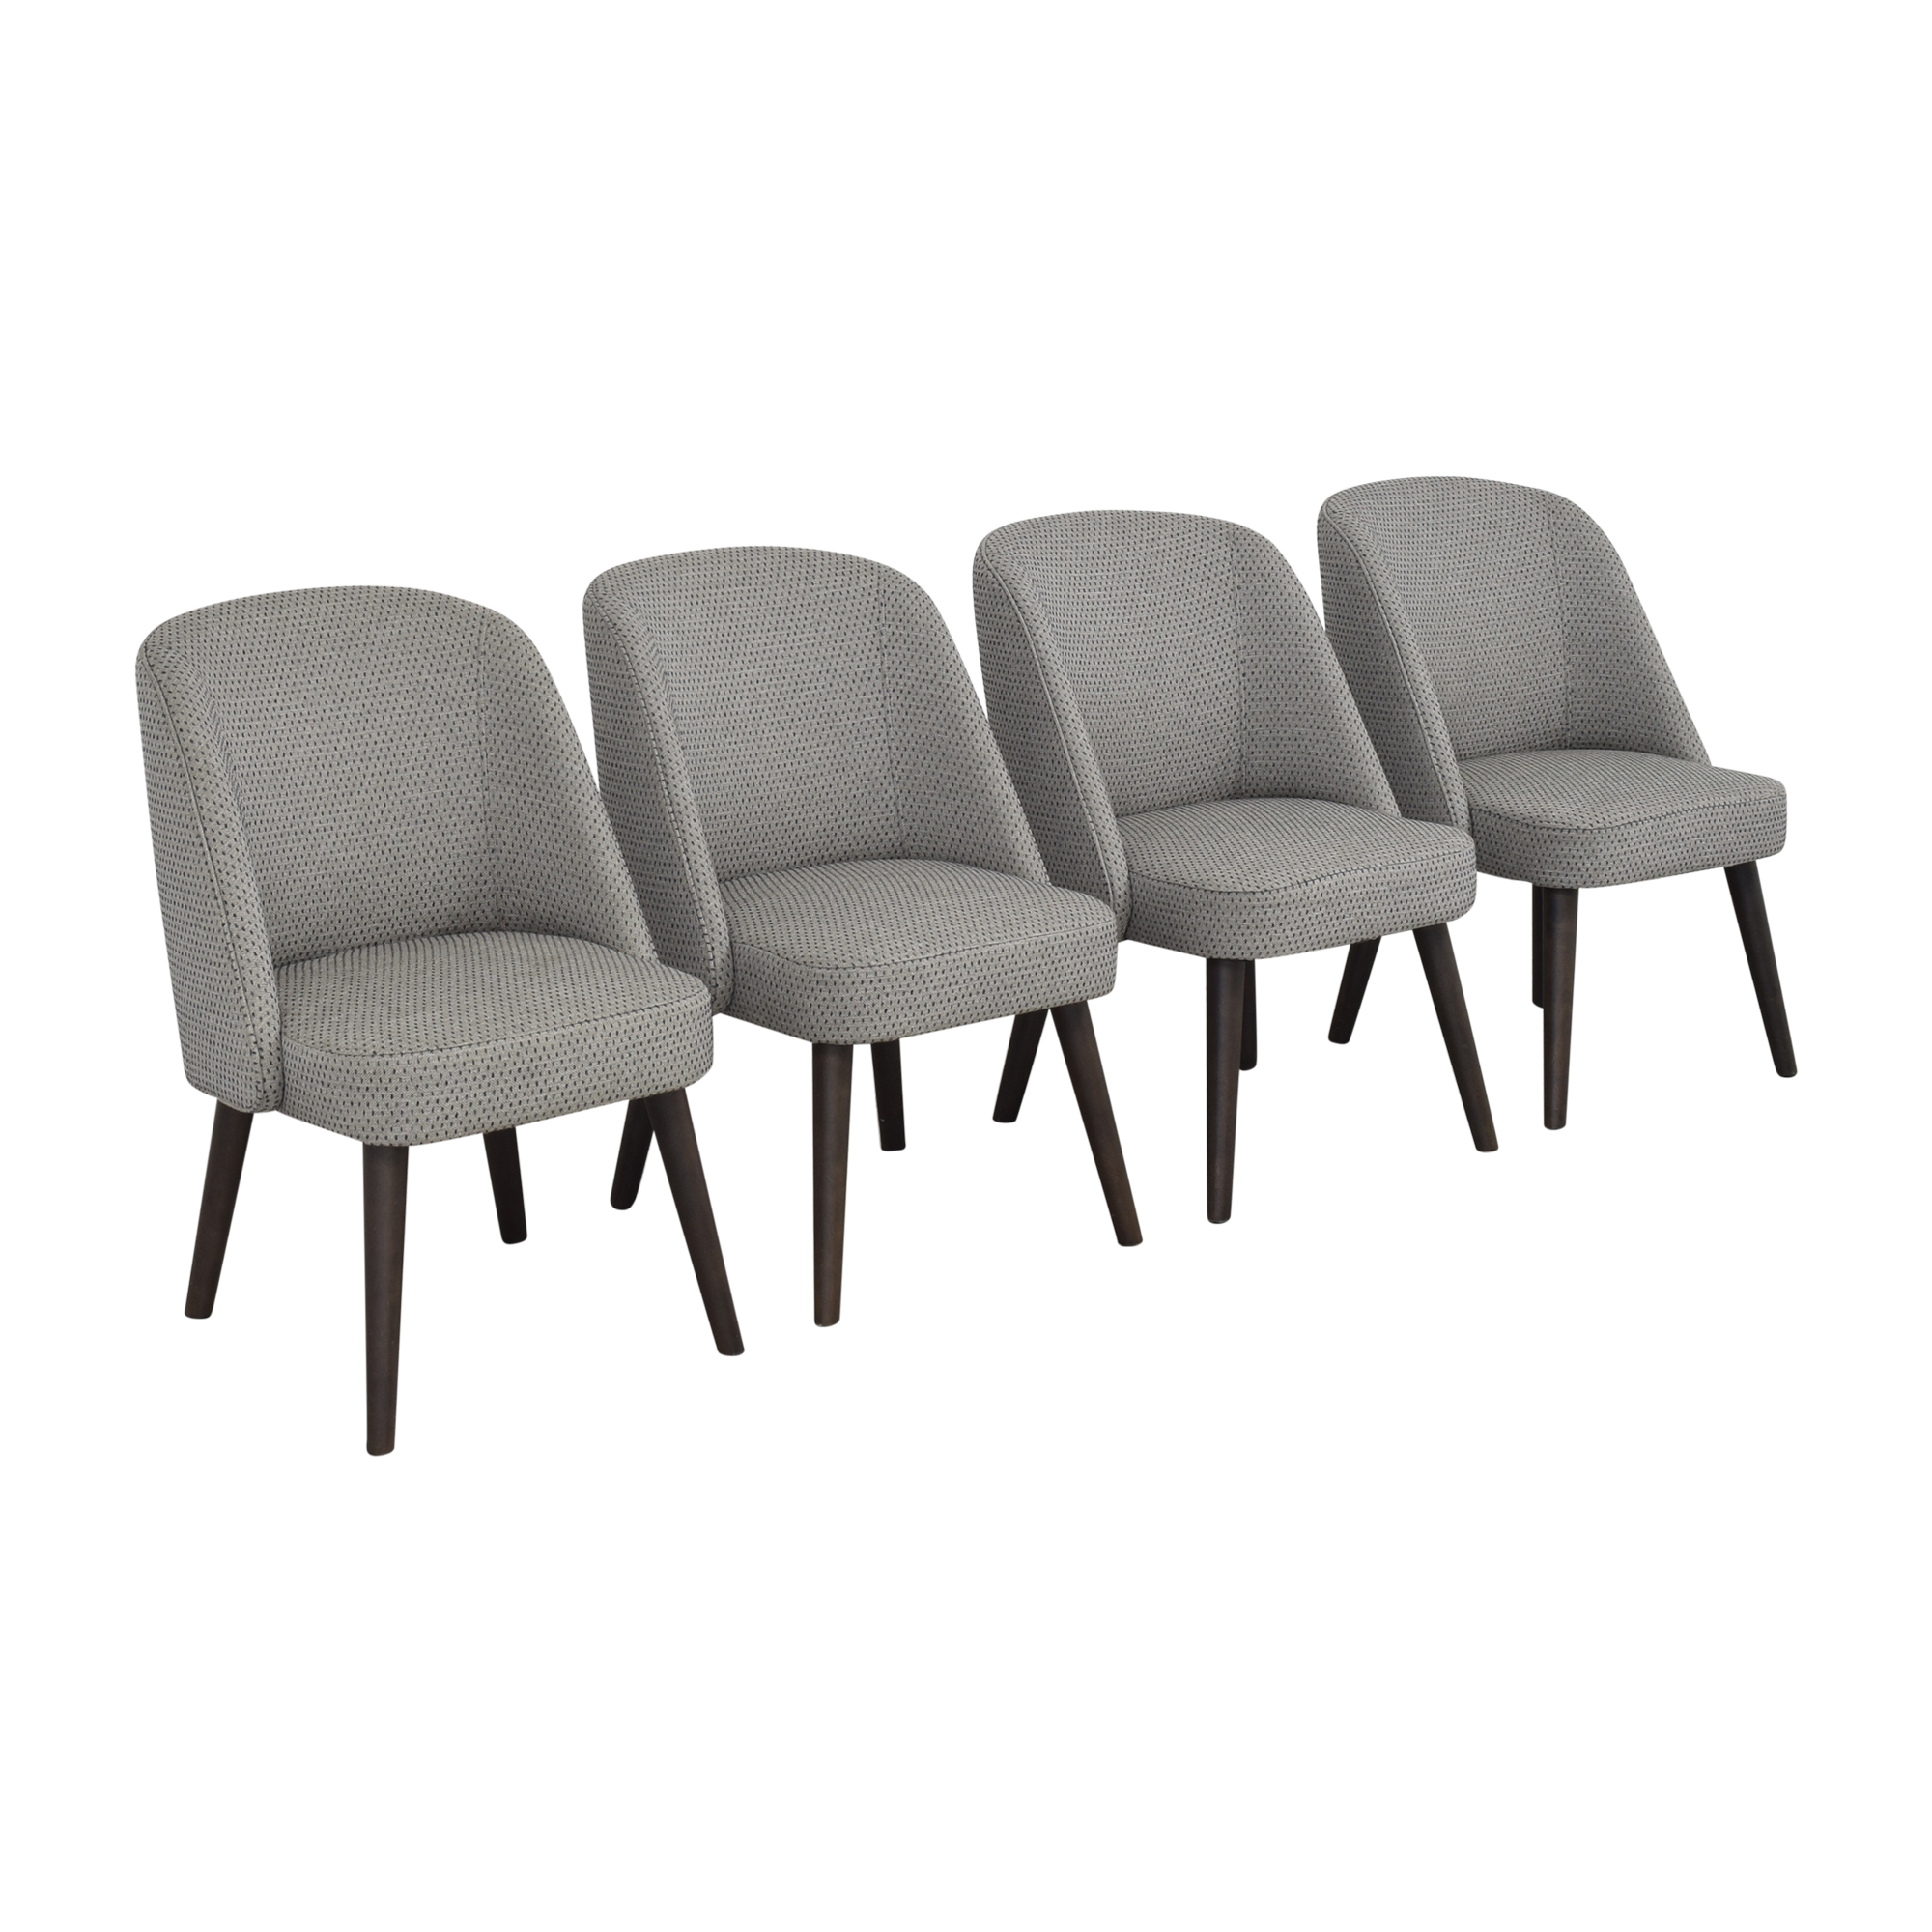 Room & Board Room & Board Cora Dining Chairs on sale